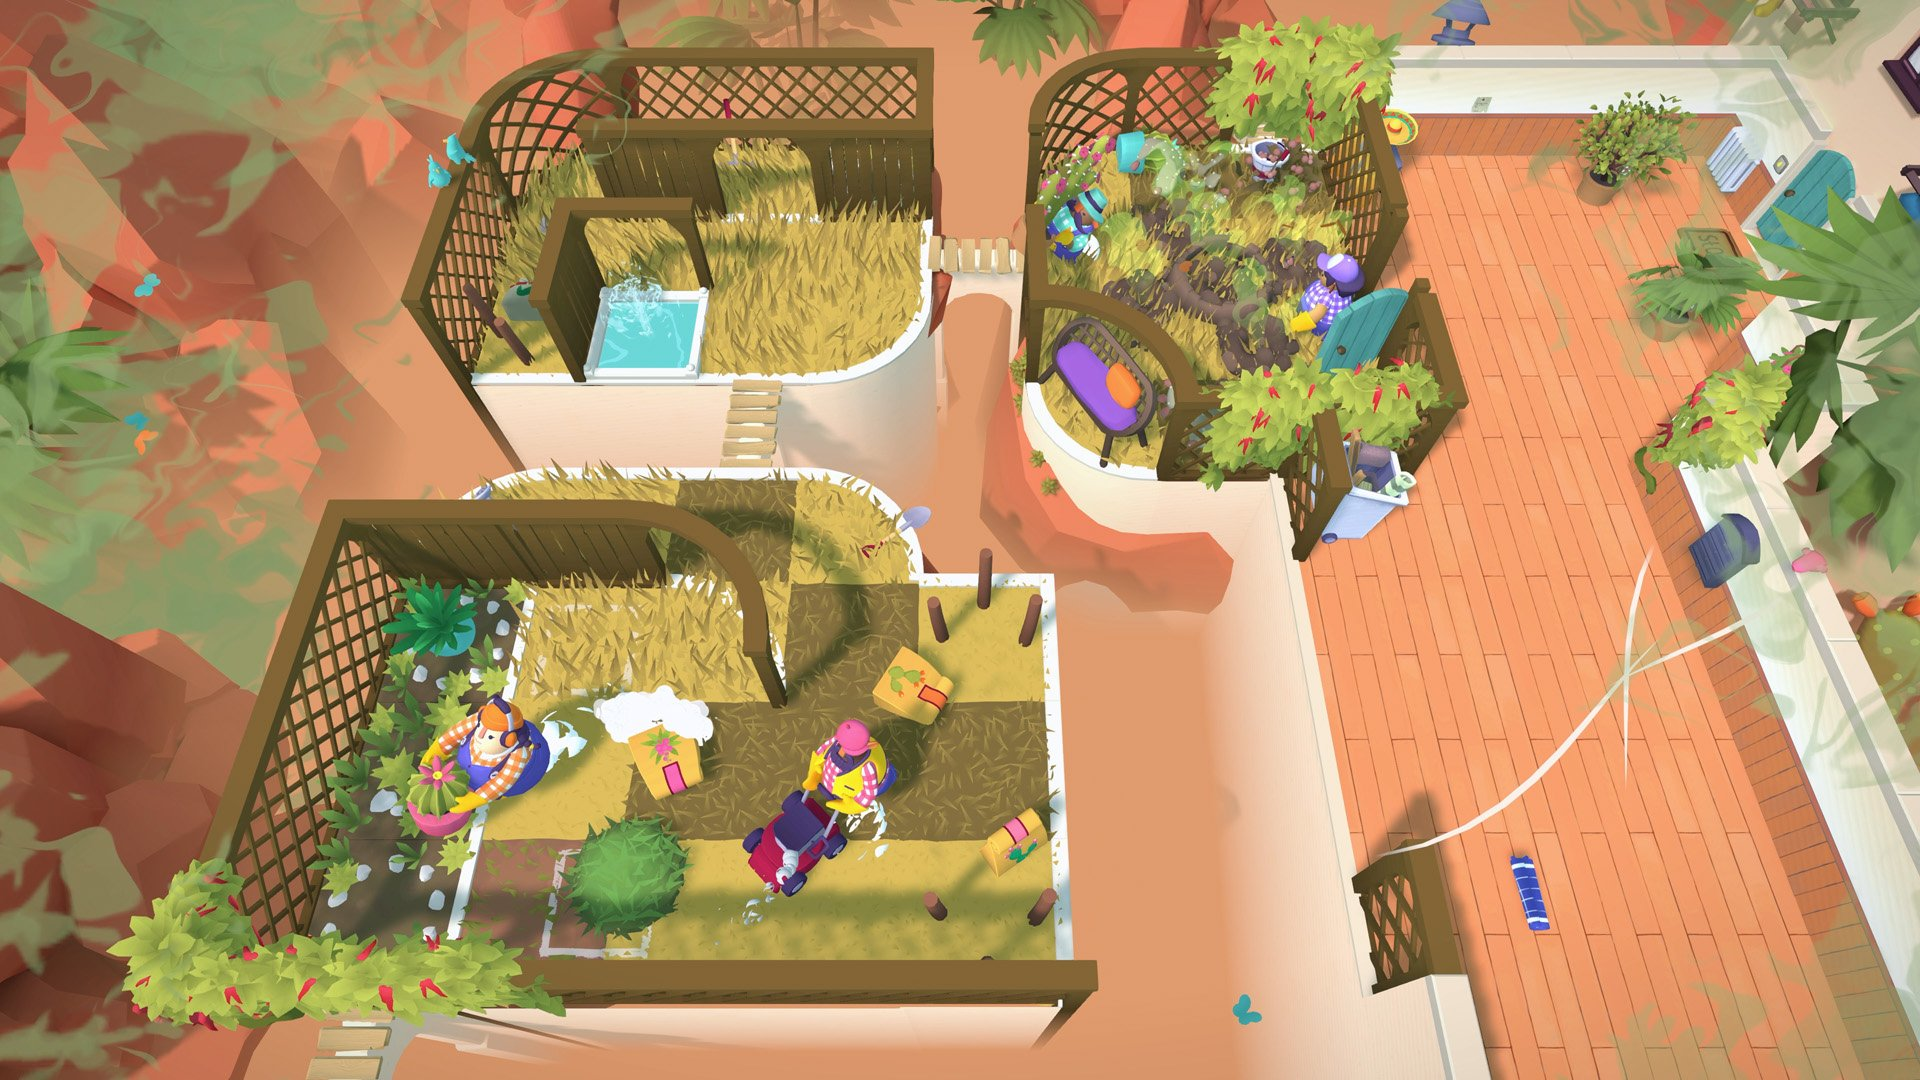 A screenshot from the Tools Up! DLC, showing two players tending a garden to varying degrees of success.